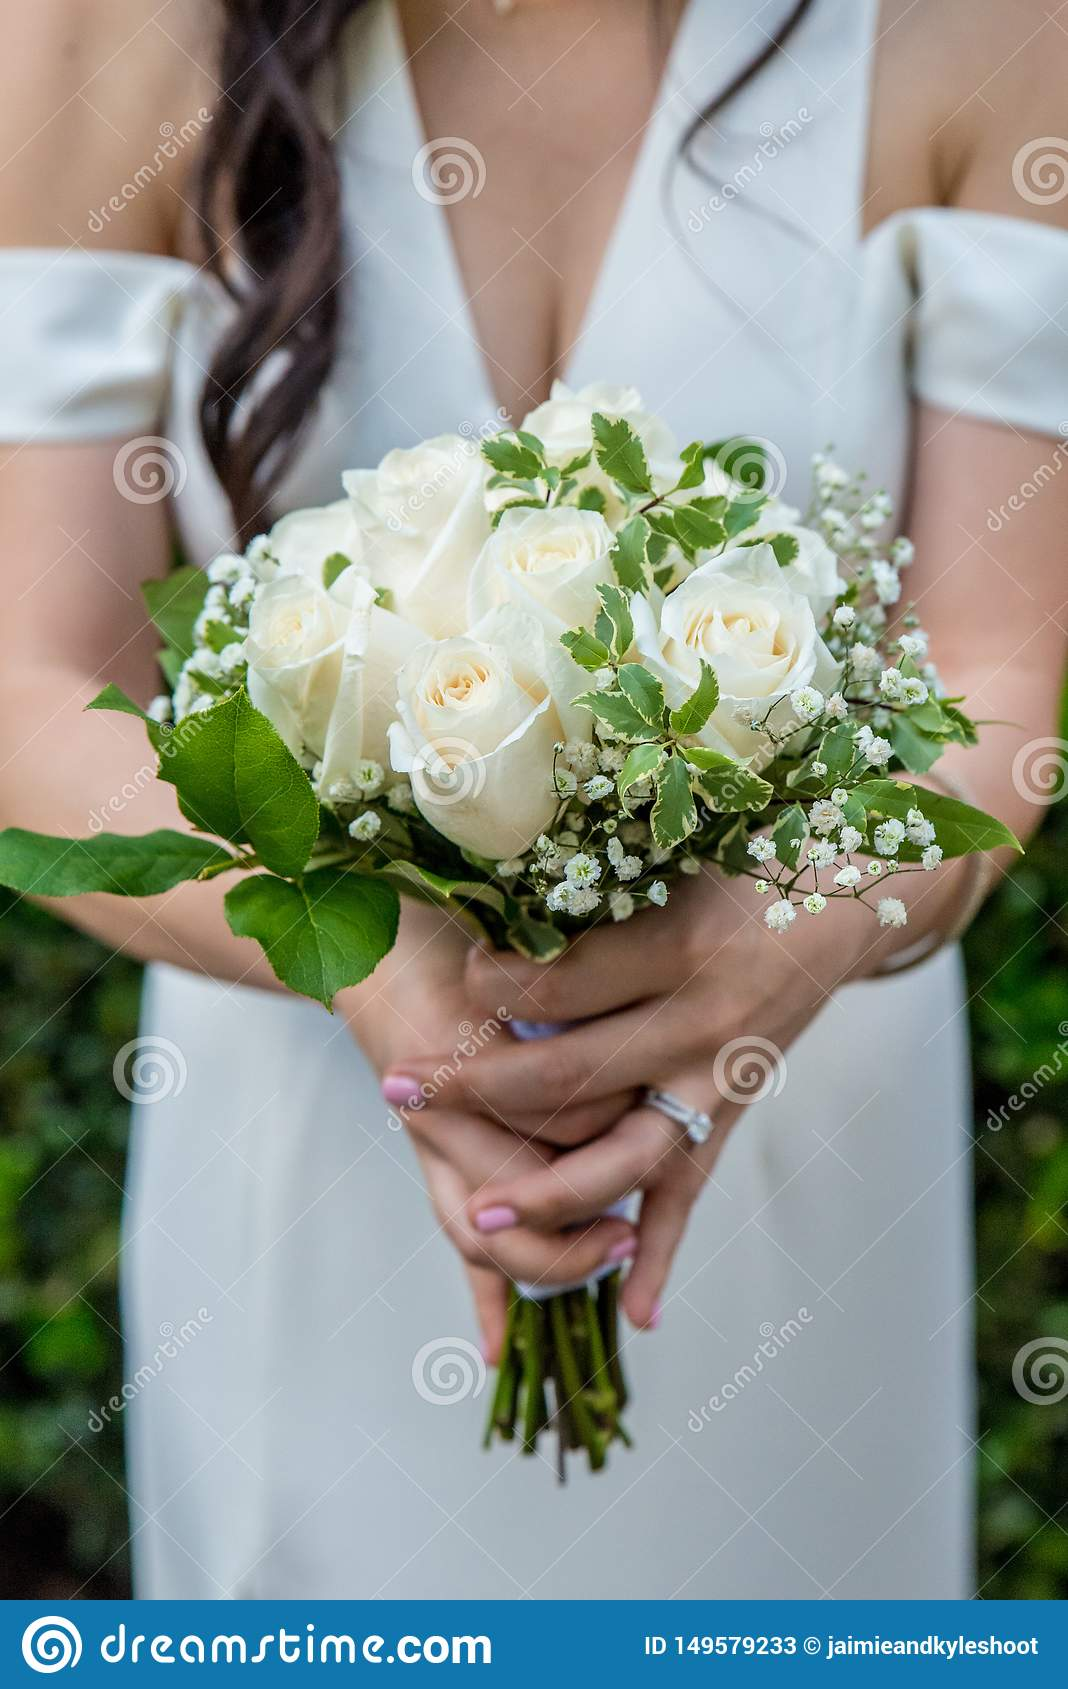 Beautiful white rose bouquet with baby`s breath held by a bride with dark hair wearing a white wedding dress and an engagement rin